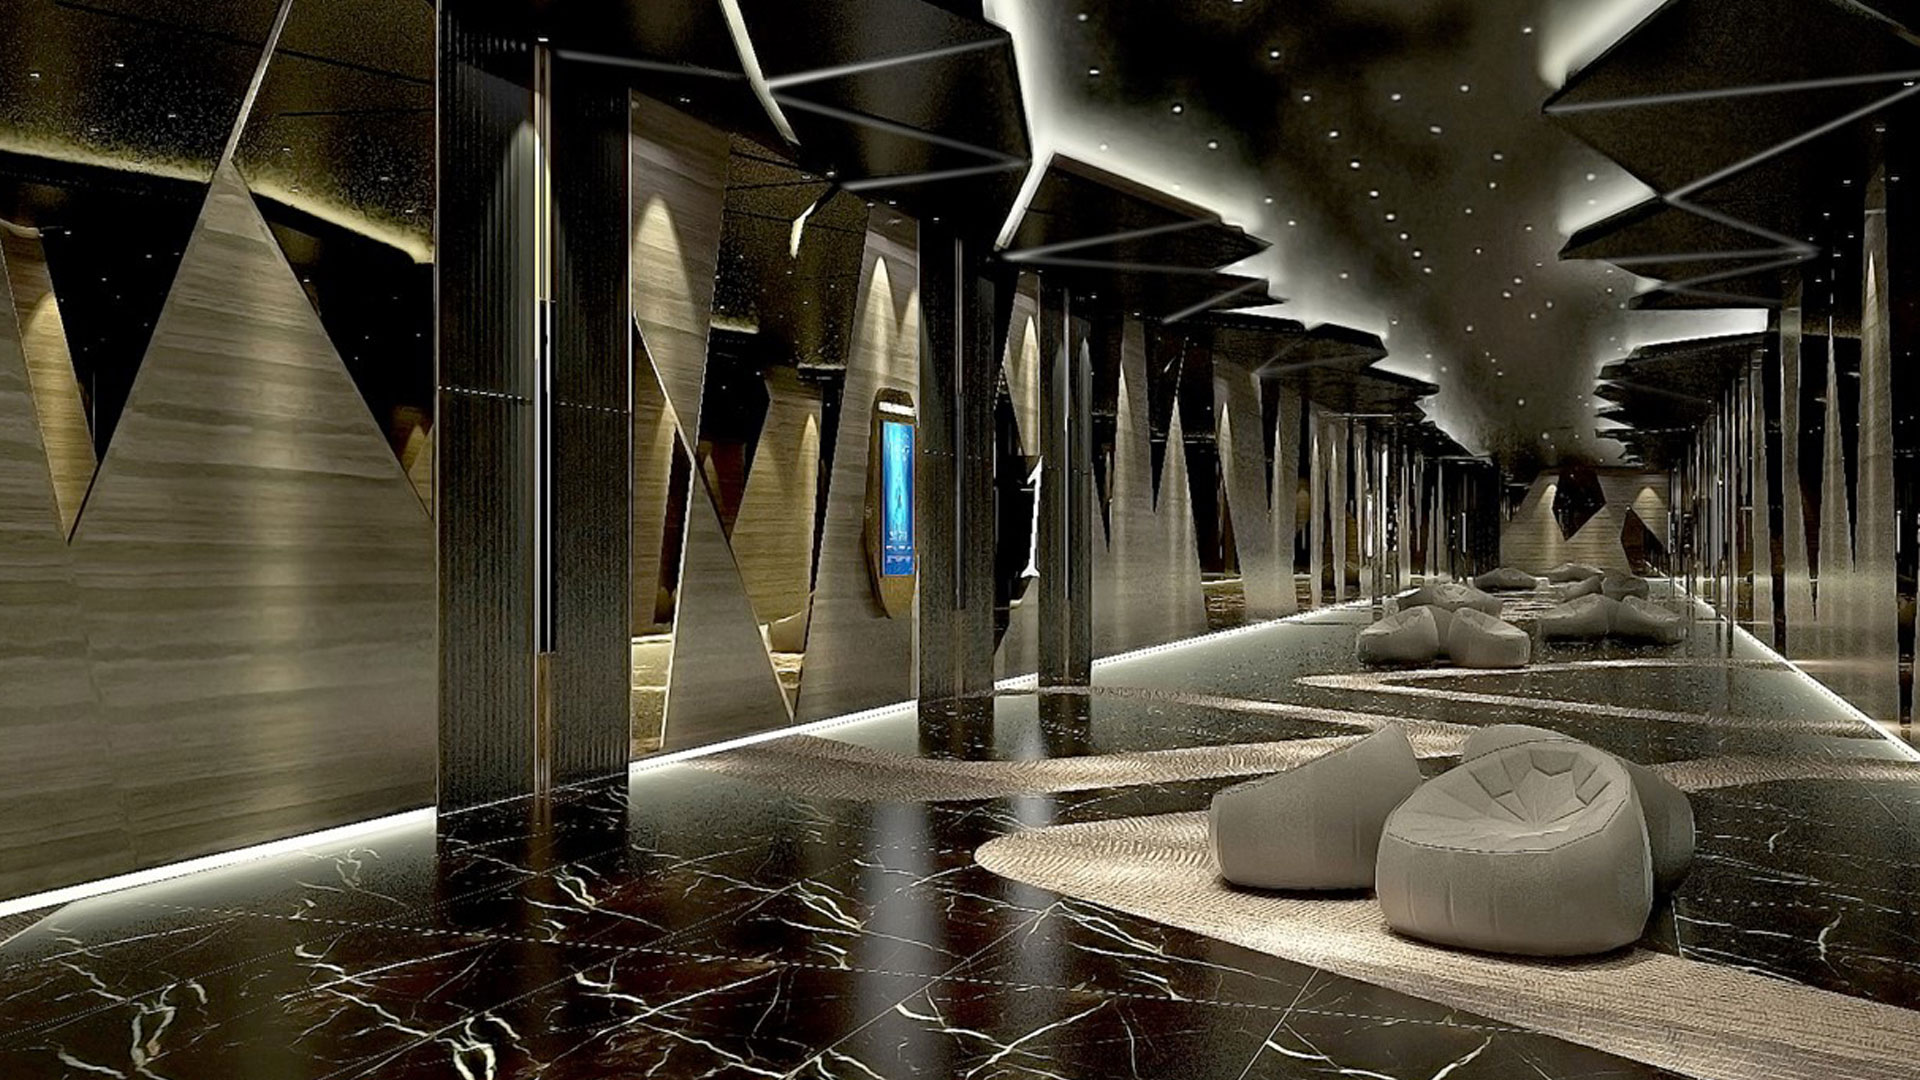 ASYA-Design-Projects_Proposed-D-Mall-Development-2-1920